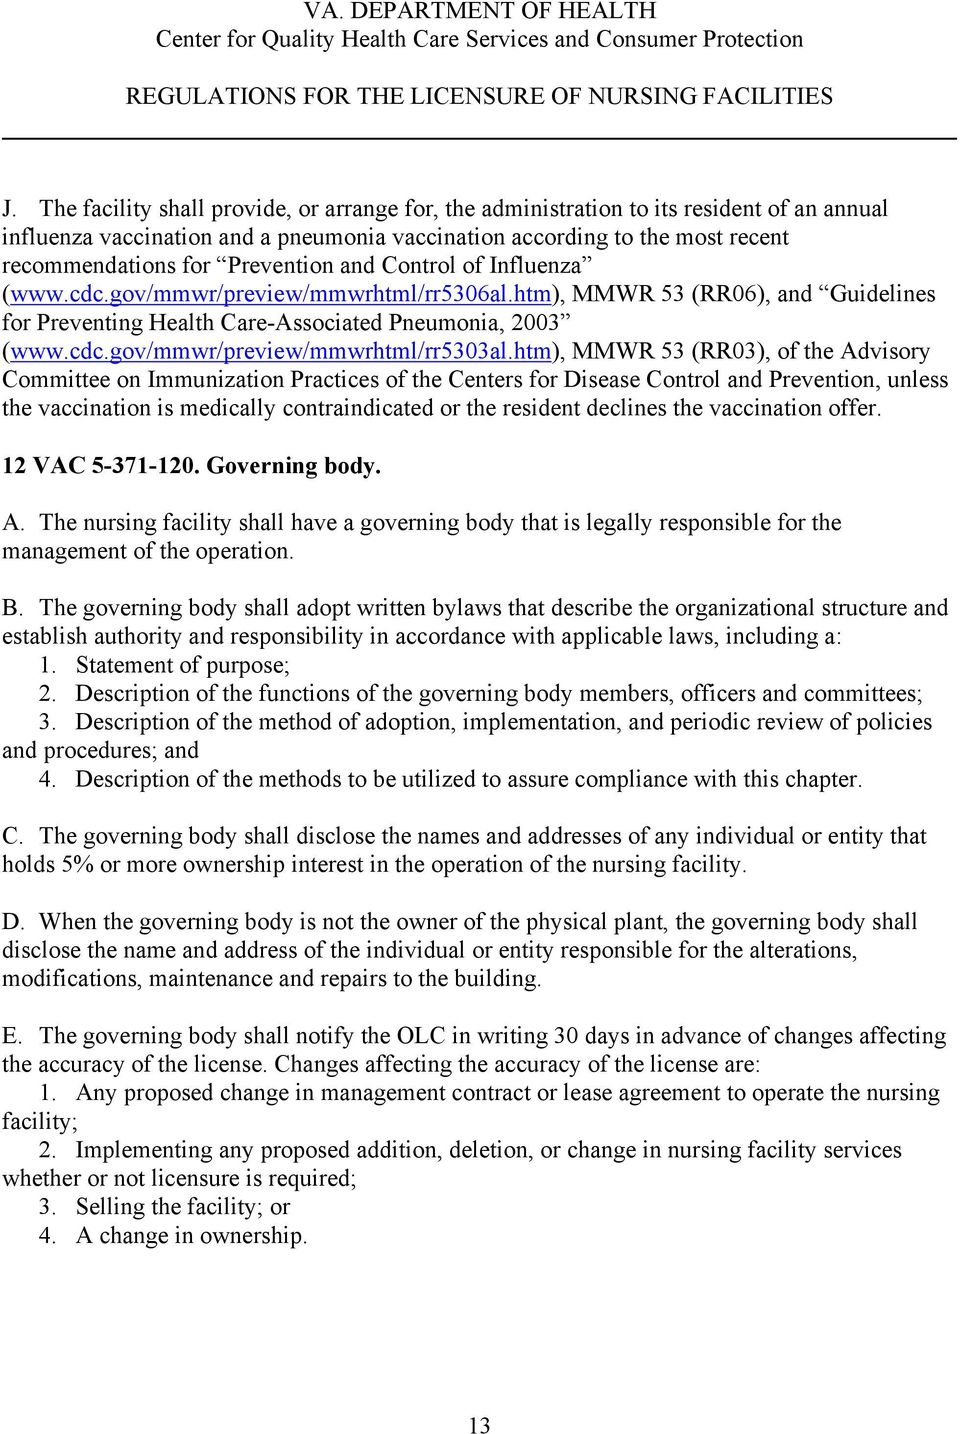 htm), MMWR 53 (RR03), of the Advisory Committee on Immunization Practices of the Centers for Disease Control and Prevention, unless the vaccination is medically contraindicated or the resident